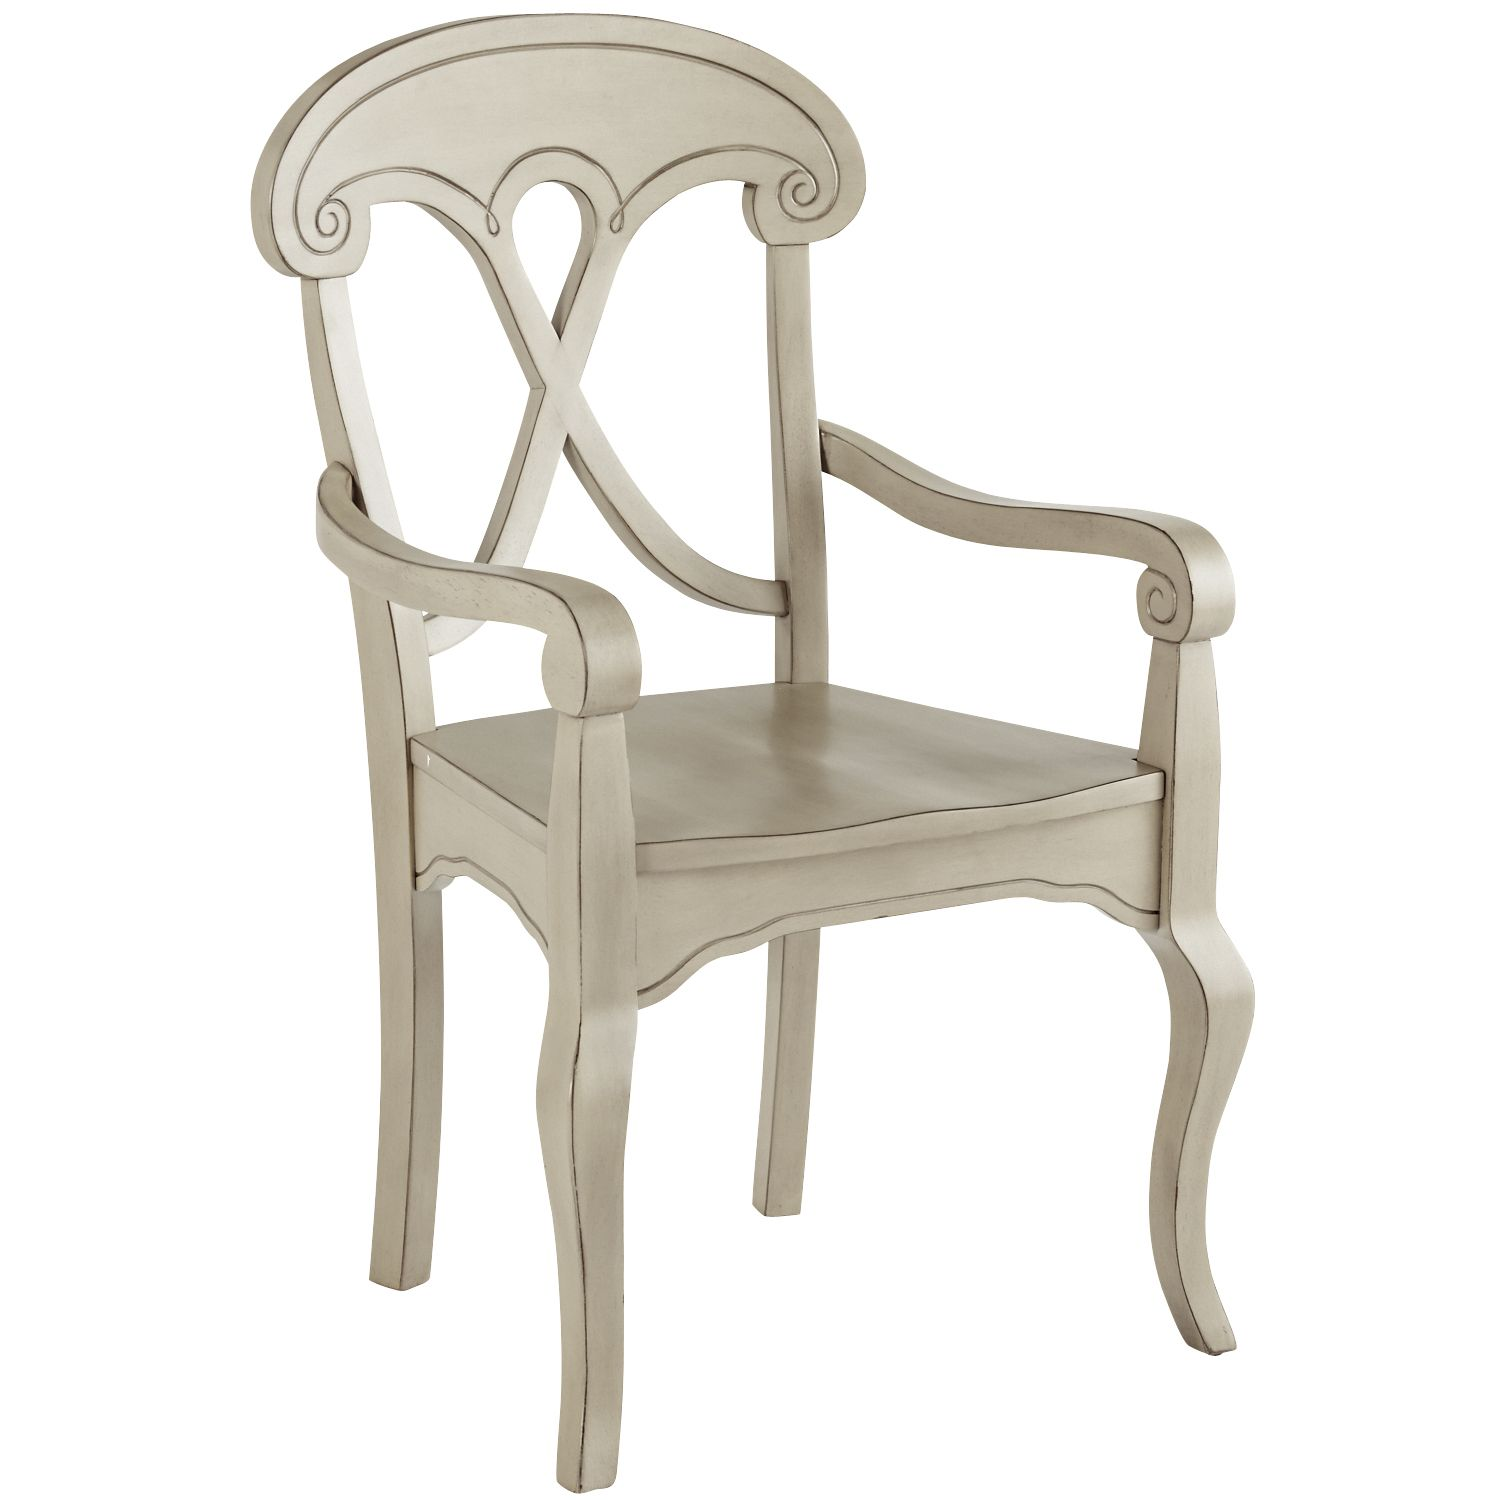 Hardwood distressed marchella armchair linen gray